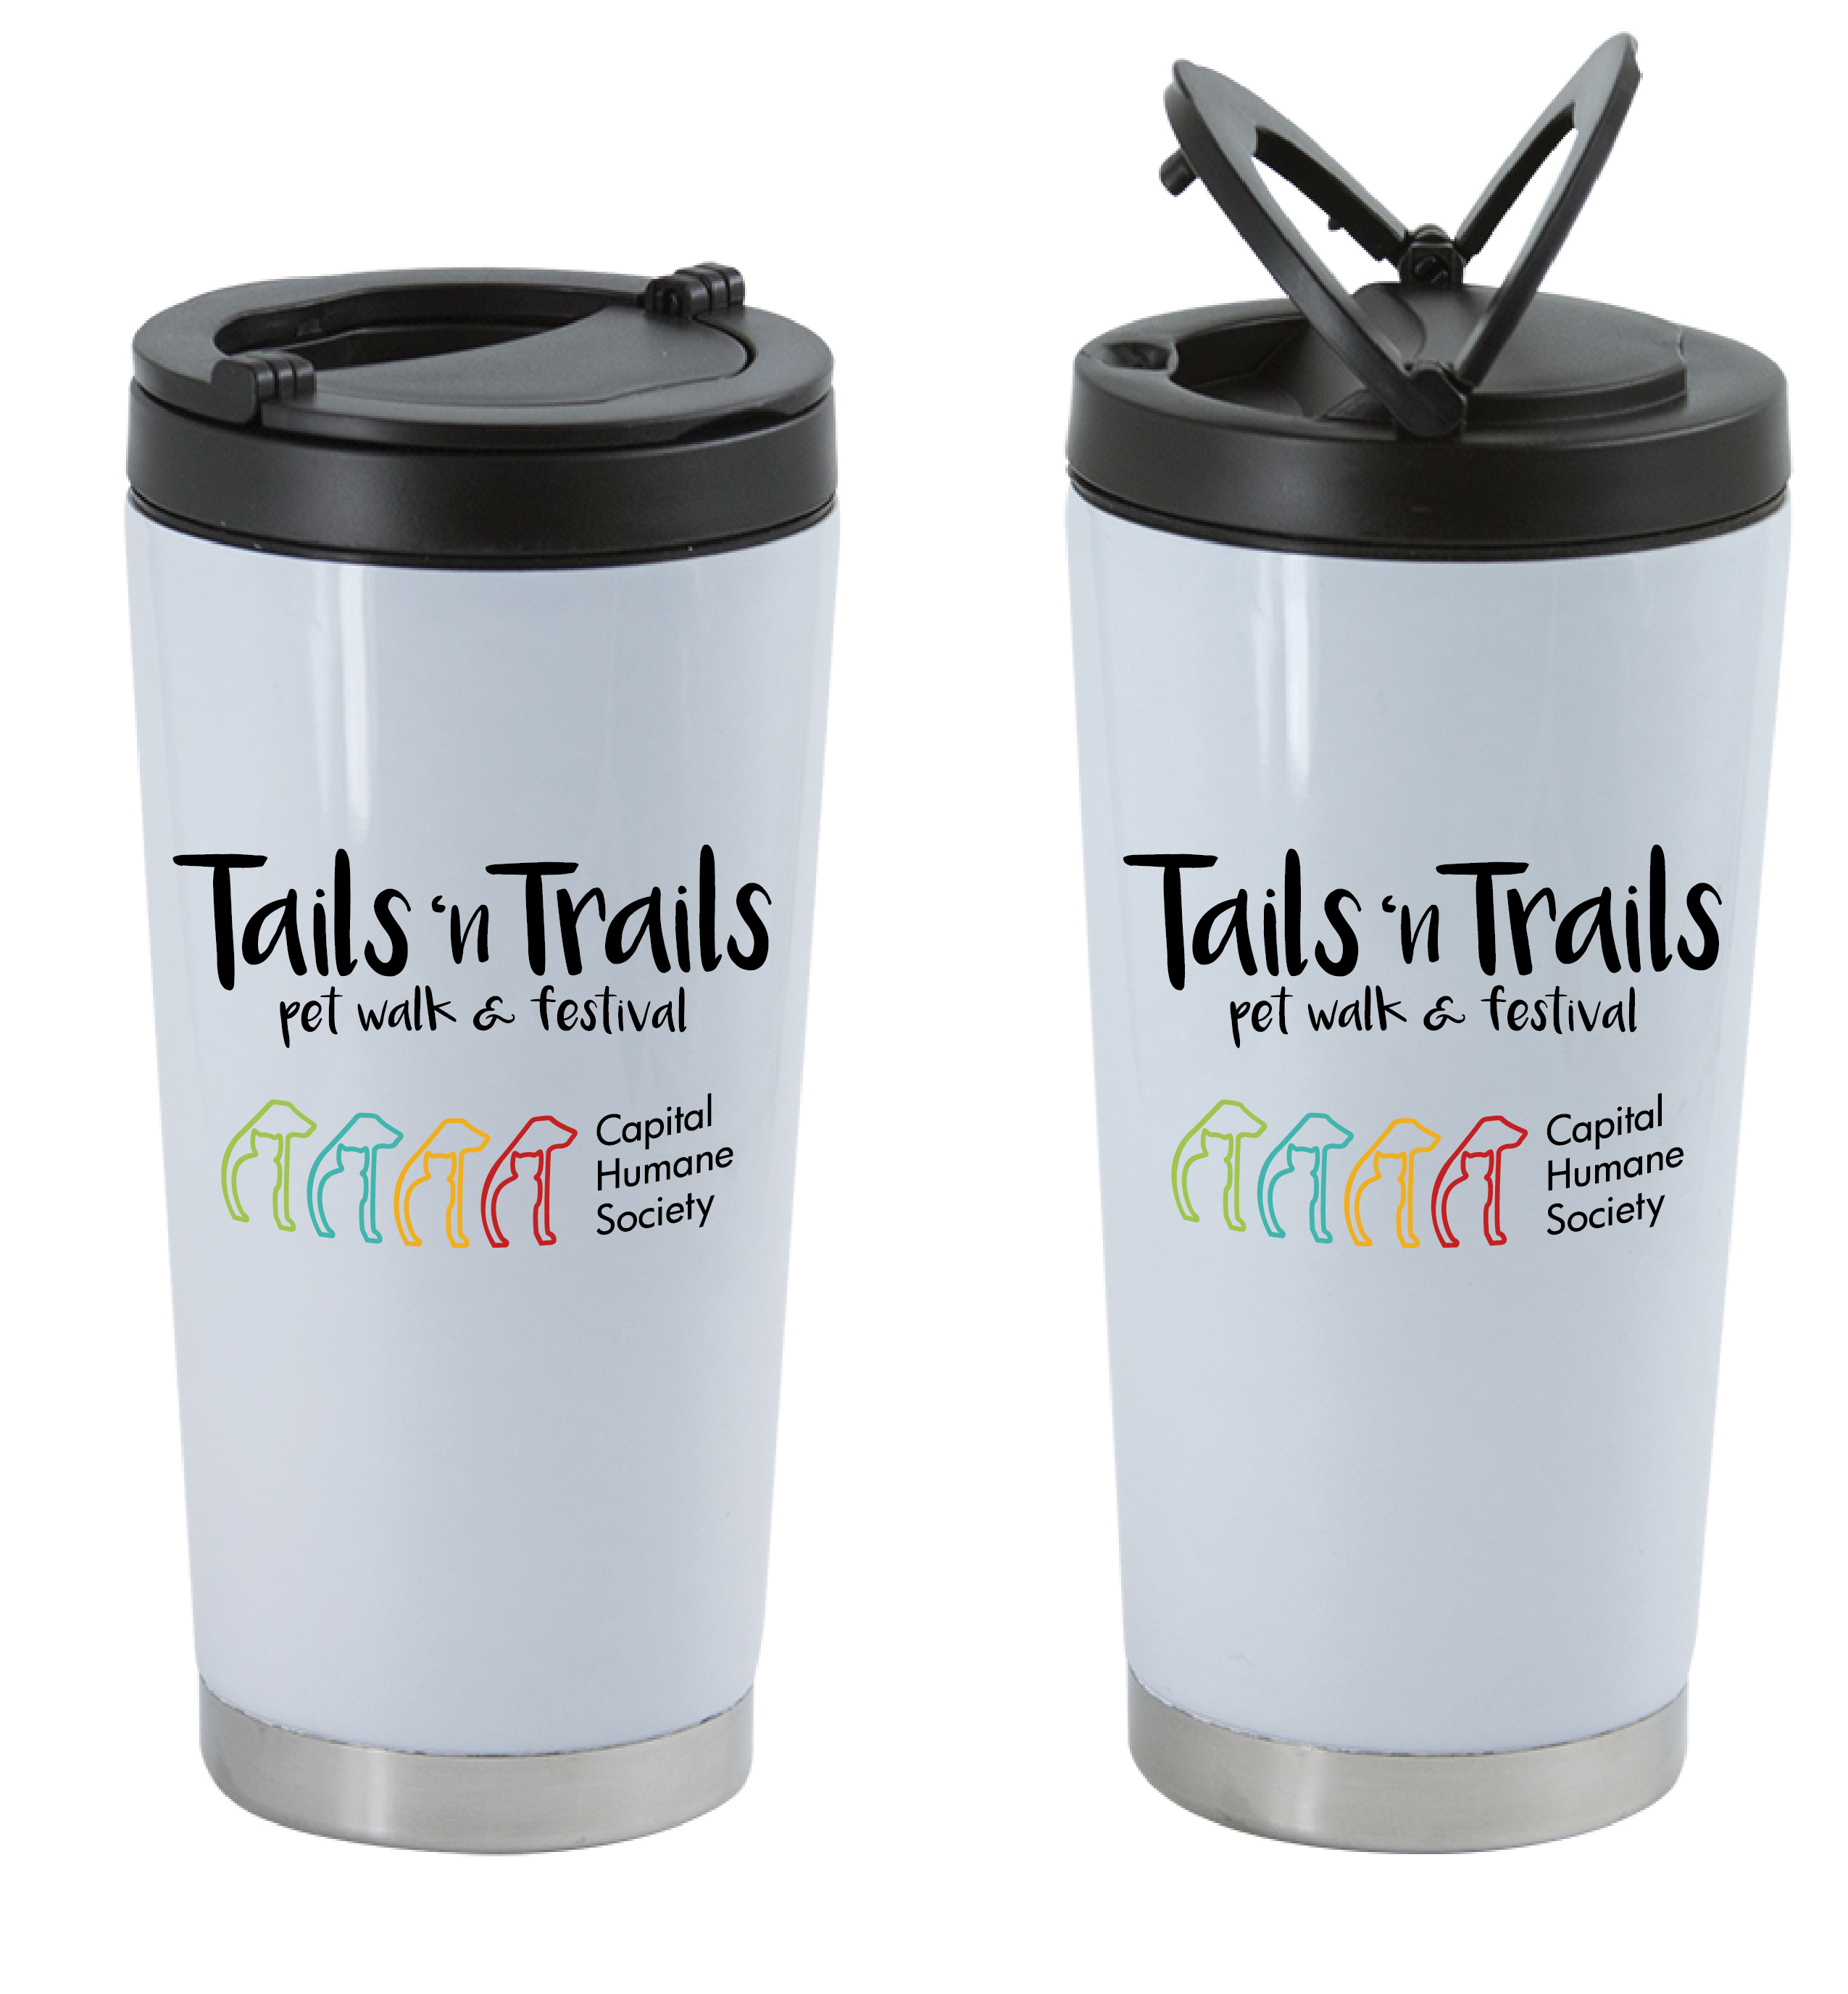 tails and tails 2019 final bag tumbler mockup 1-01.jpg